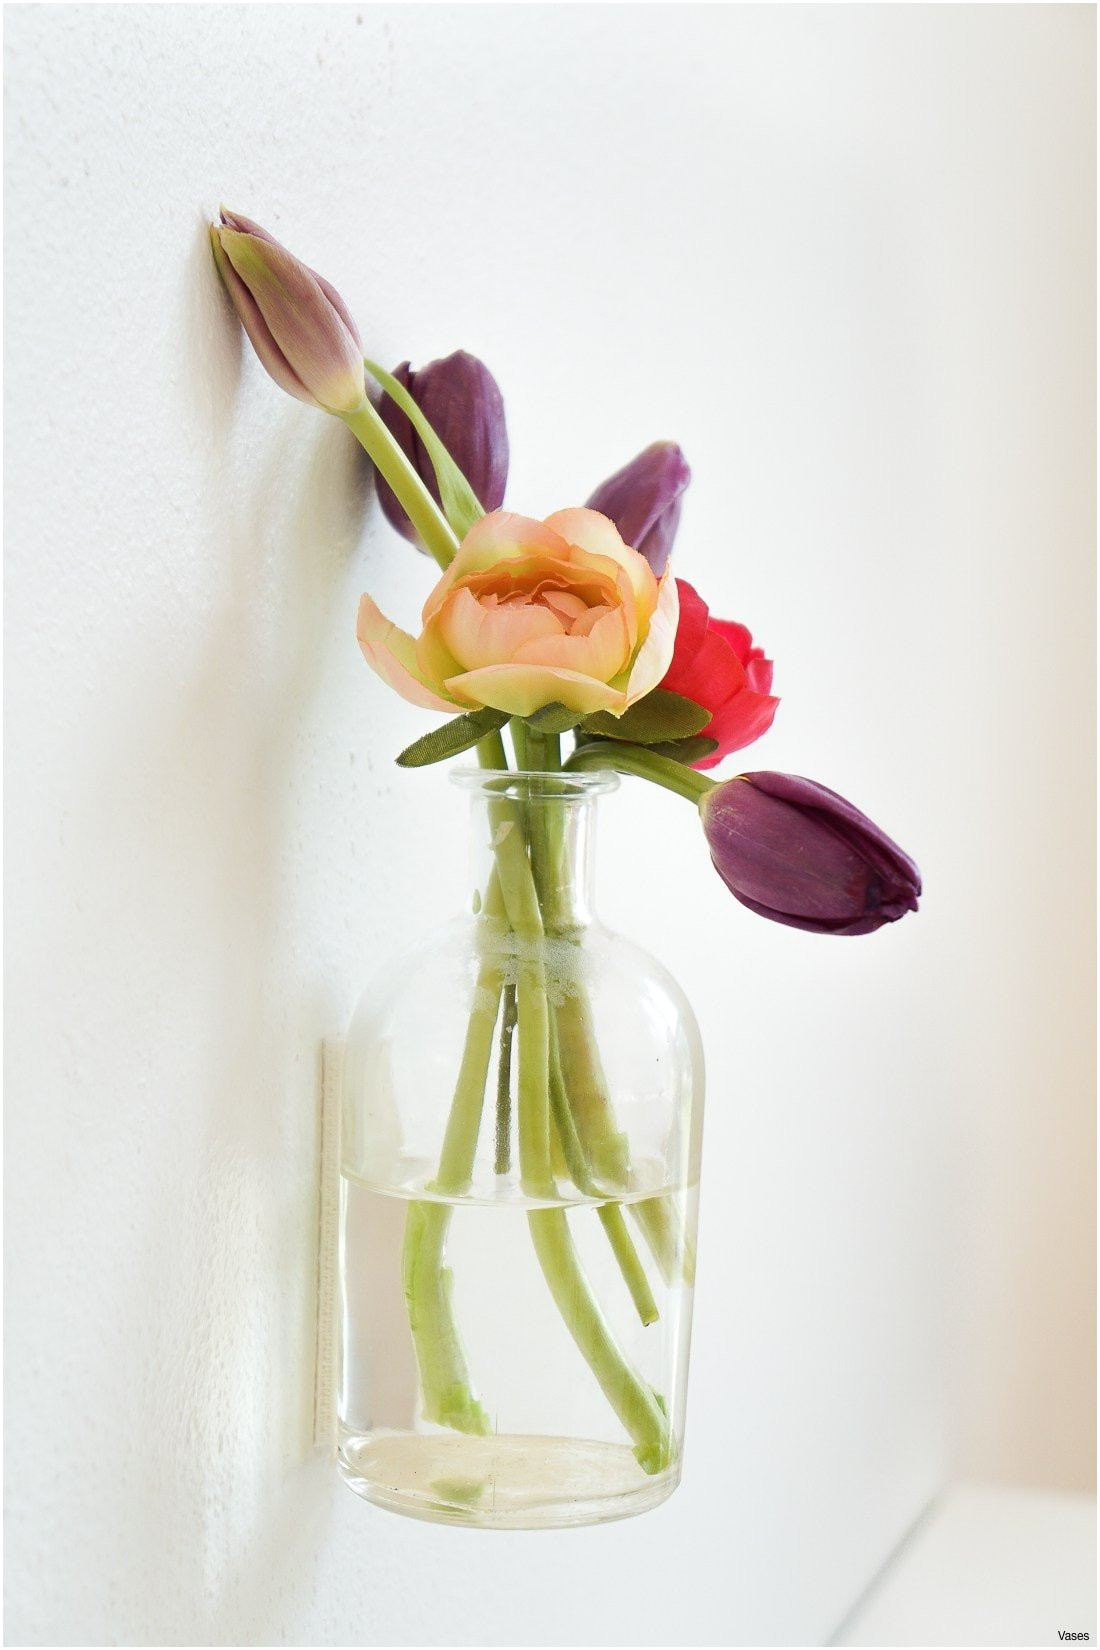 flowers in vase of pink flower petals impressive il fullxfull l7e9h vases wall flower with pink flower petals impressive il fullxfull l7e9h vases wall flower vase zoomi 0d decor inspiration 1100